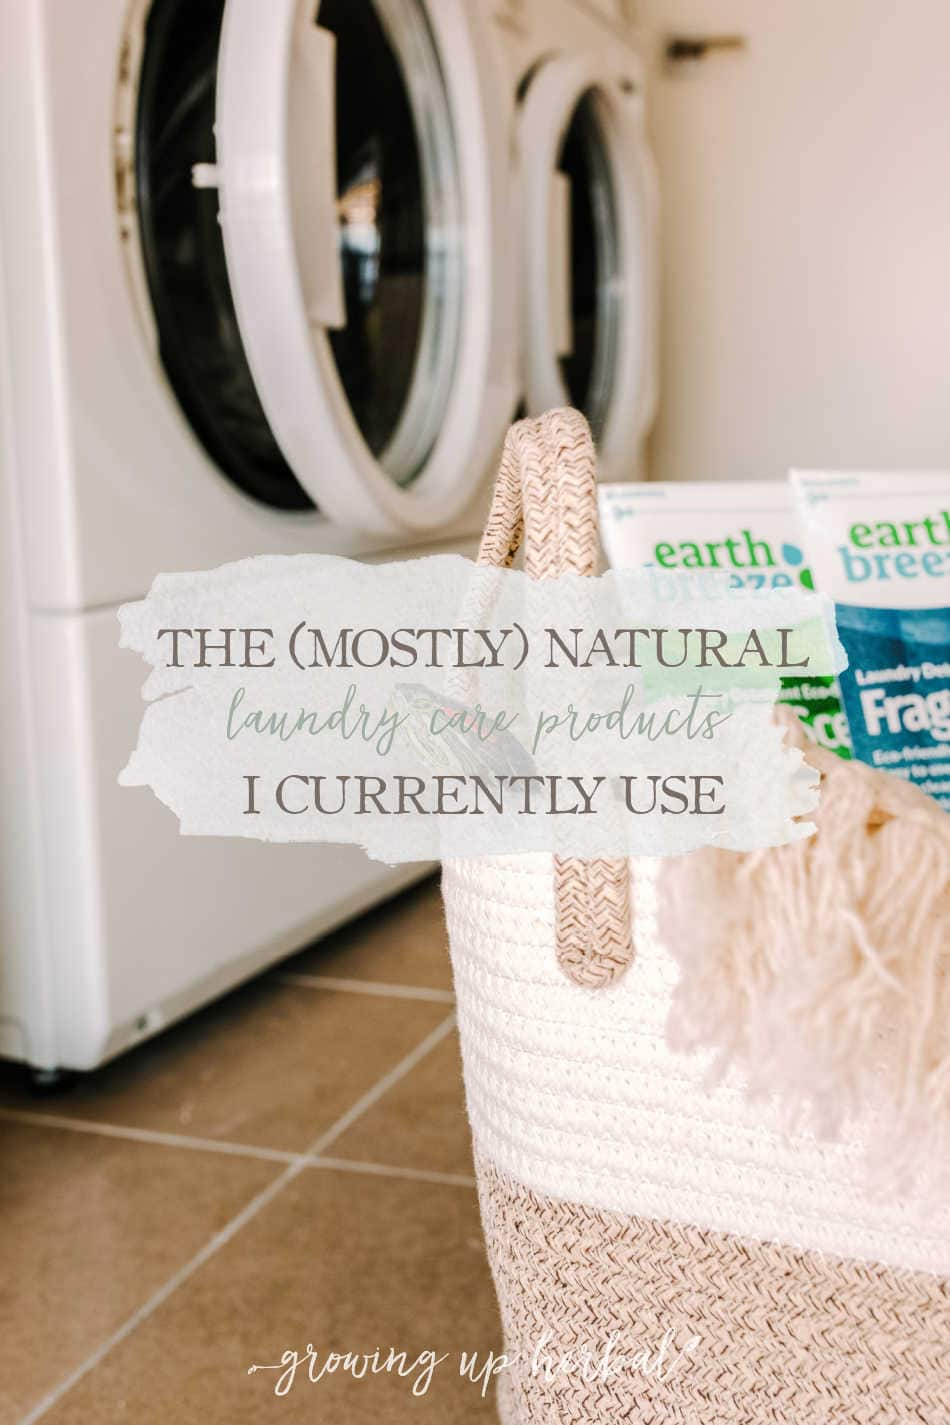 natural laundry care products in a basket in laundry room